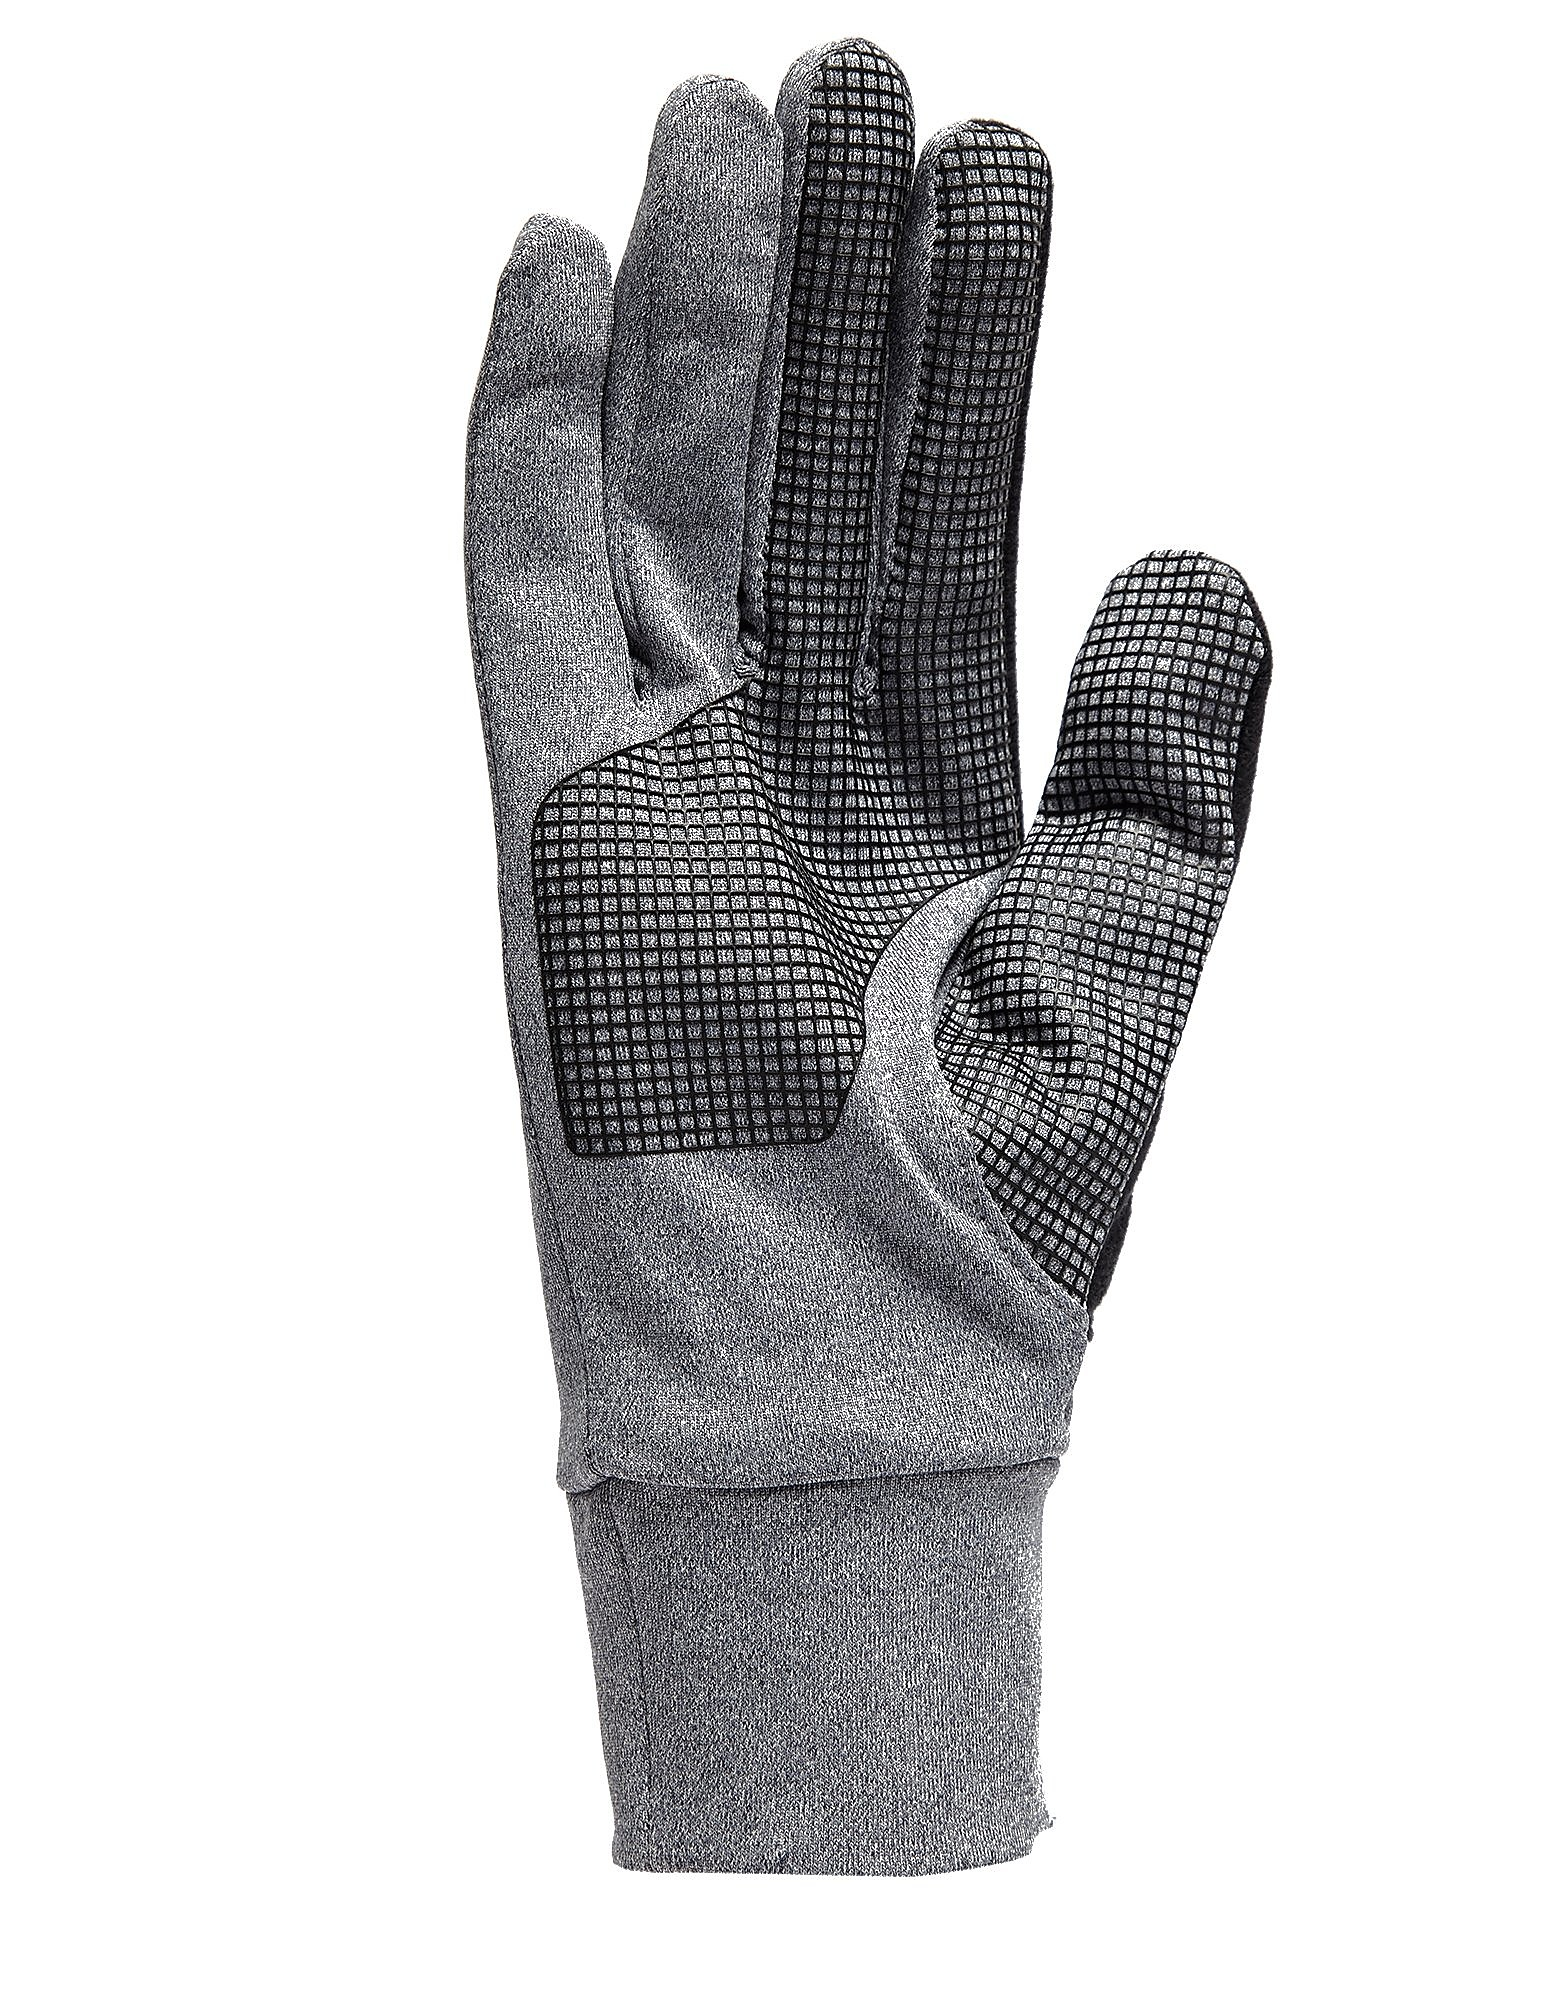 Under Armour guantes No Breaks Armour Liner